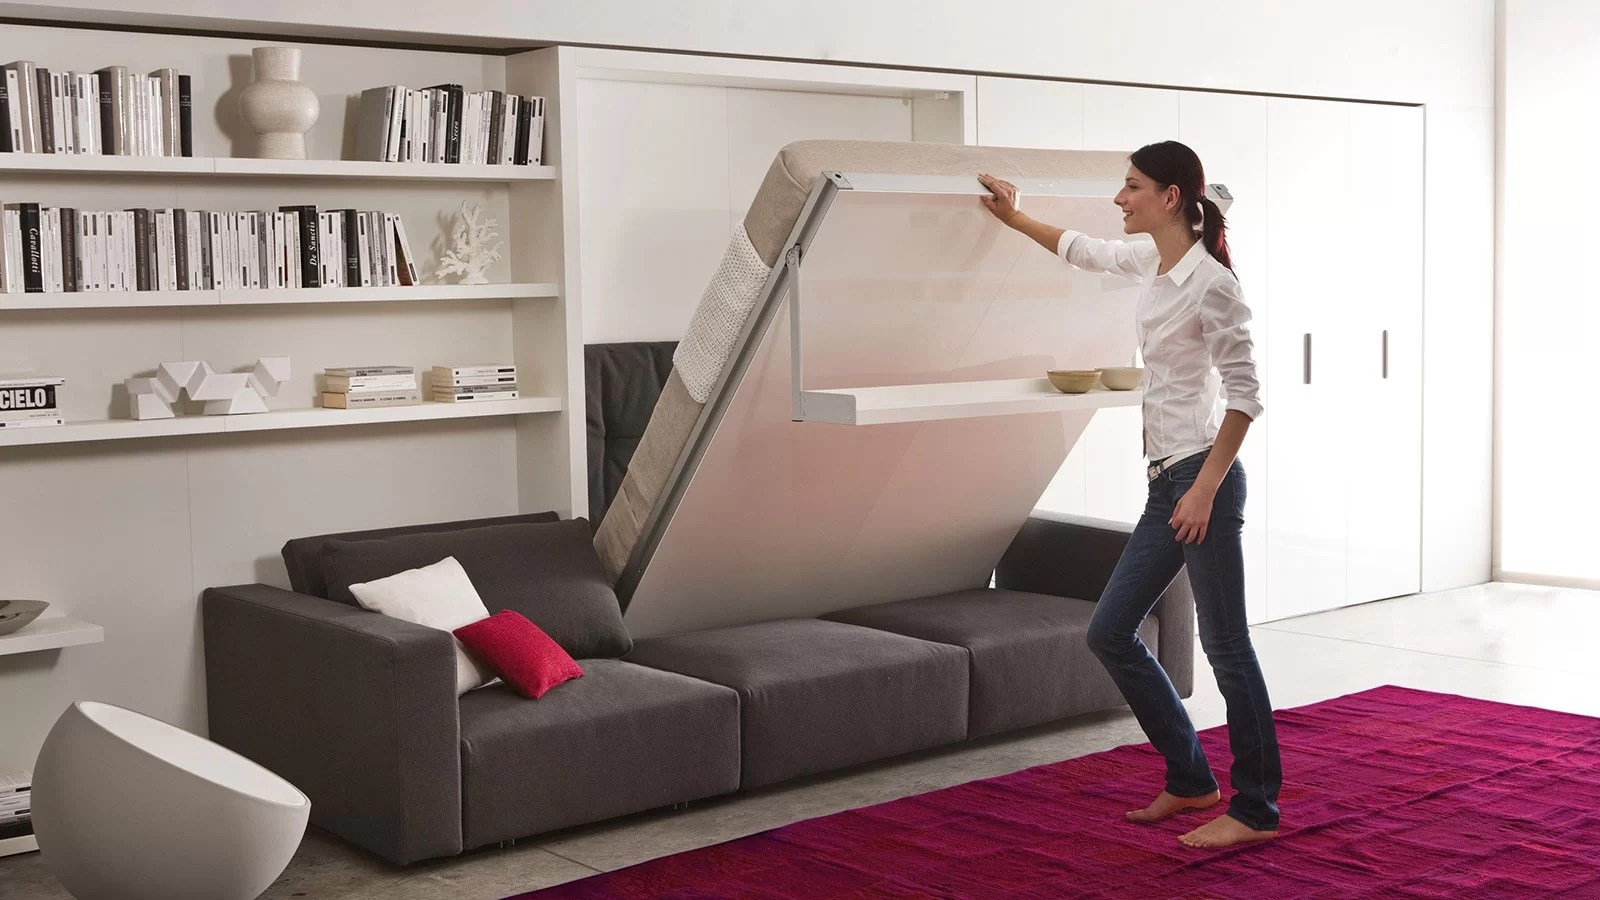 Tiltaway Beds These 10 Modern Murphy Beds Will Help You Maximize Space In Your